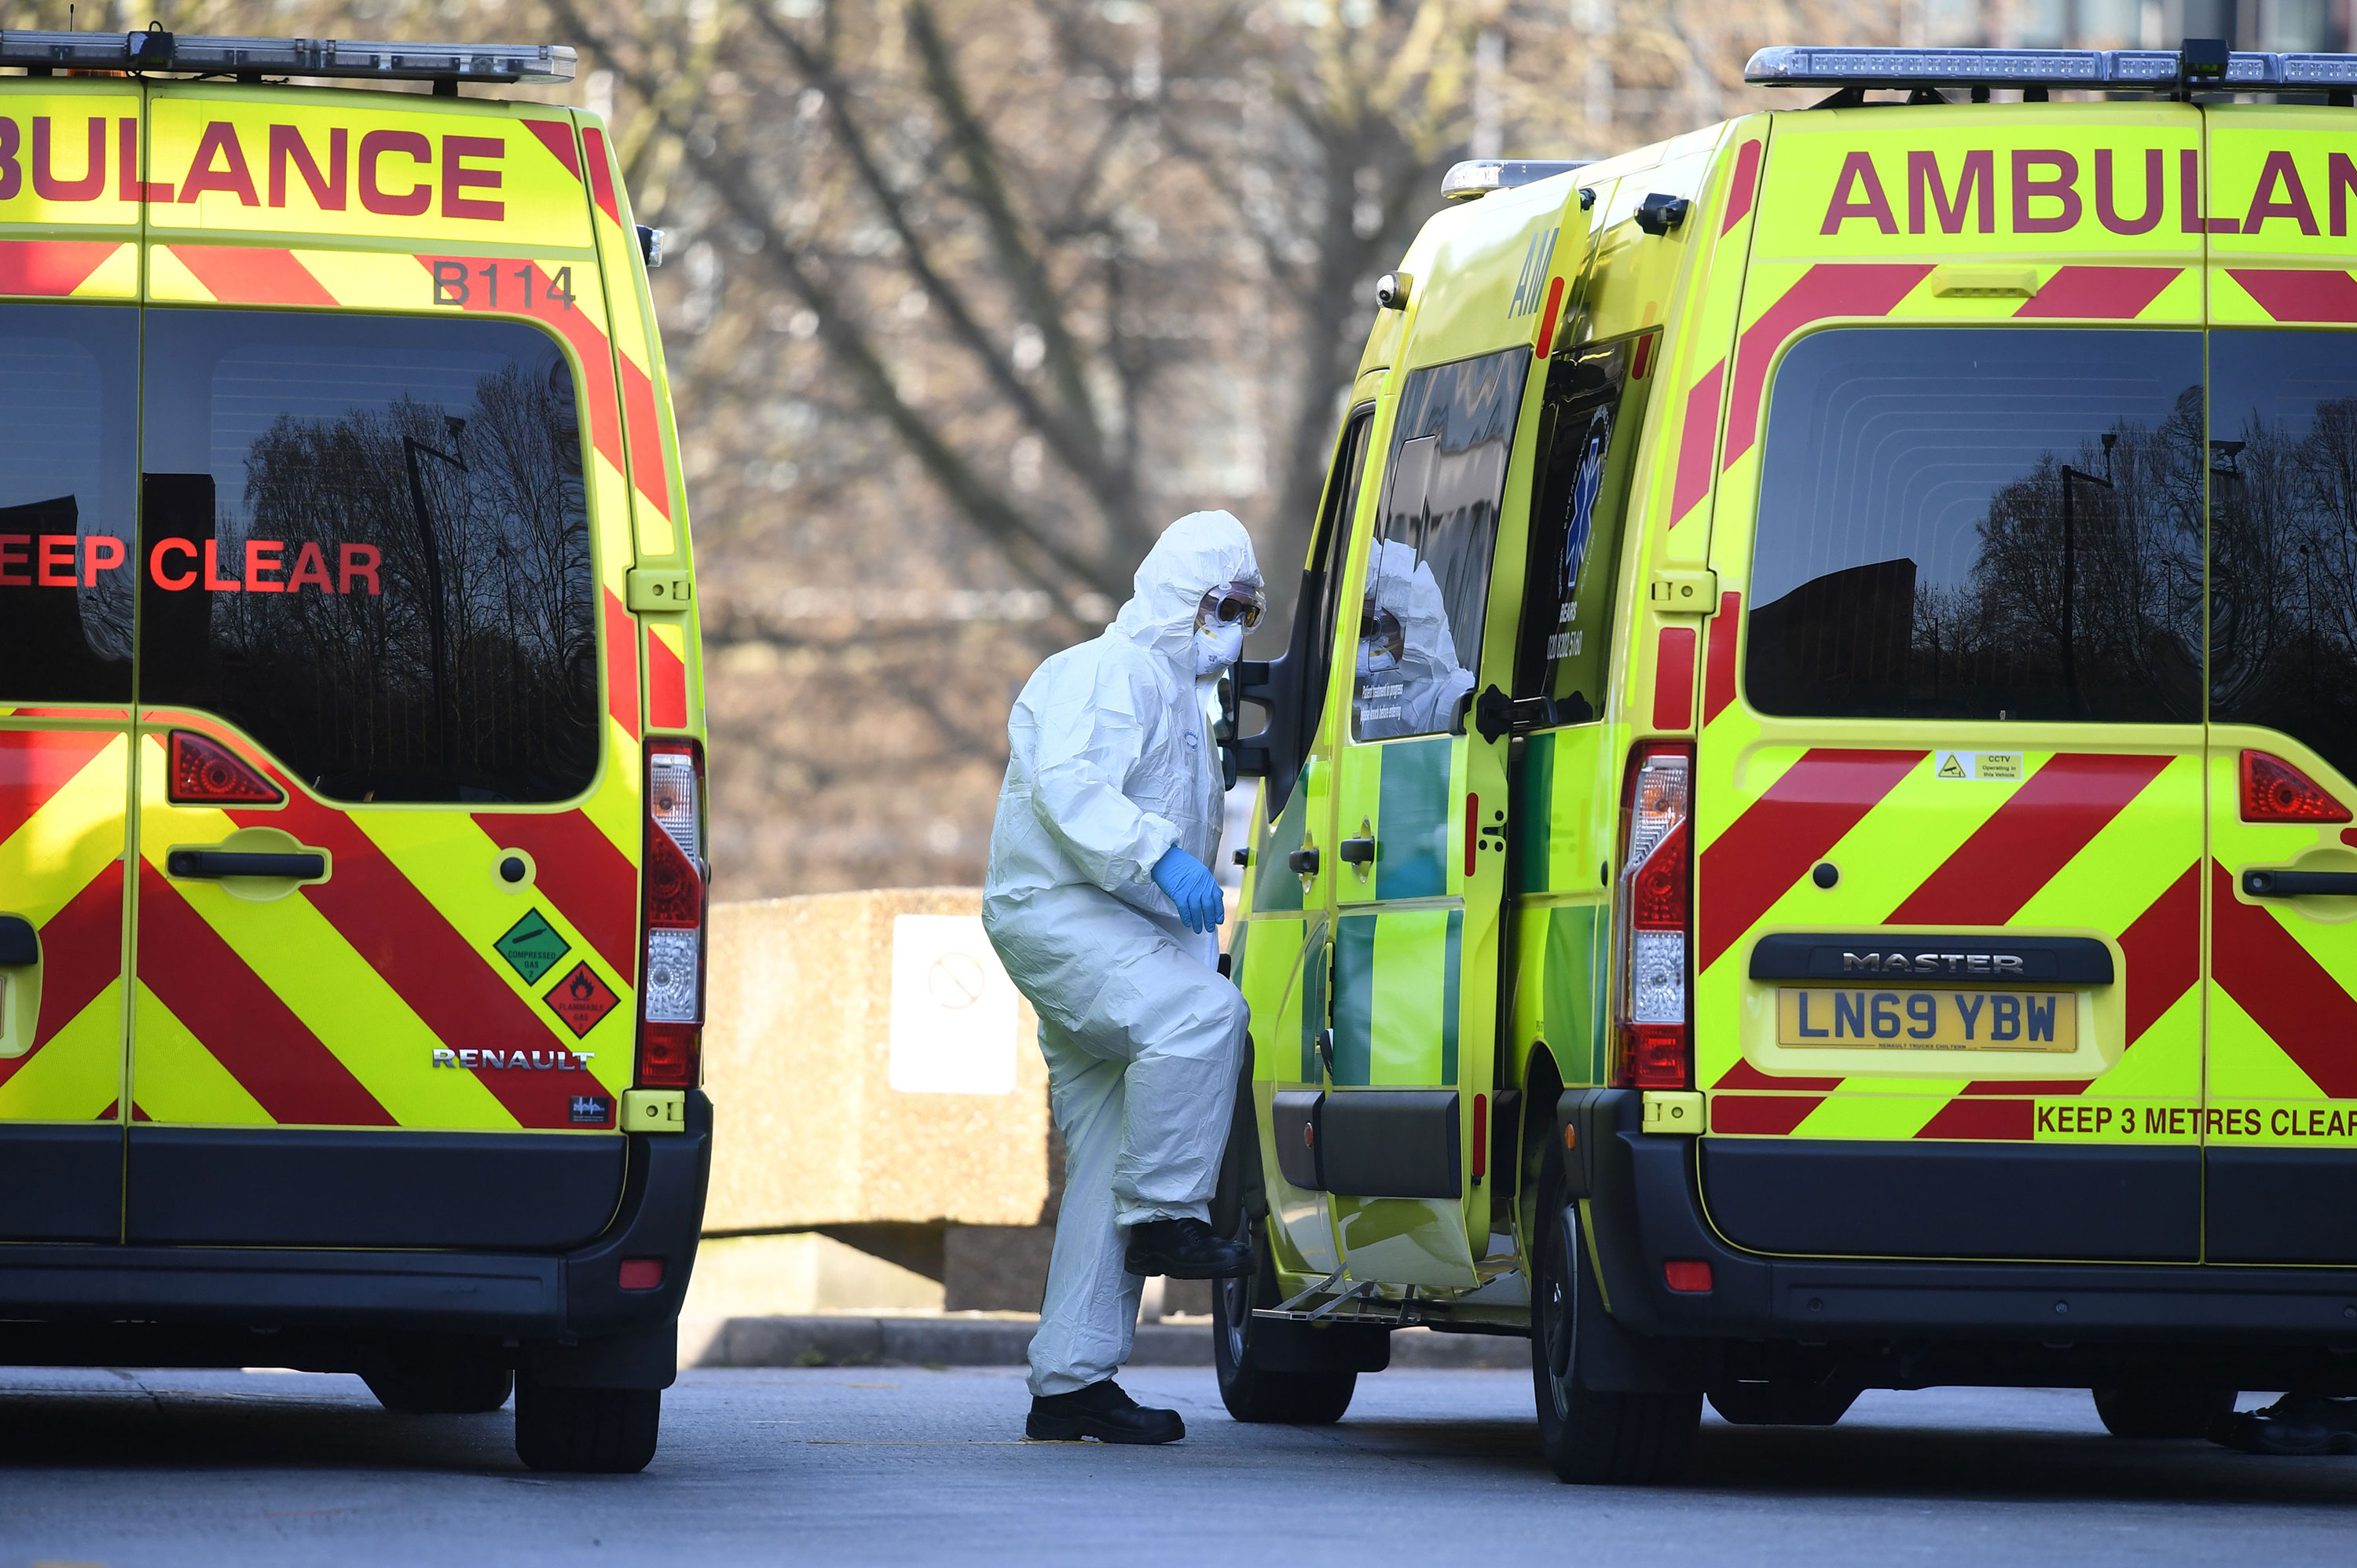 A member of the ambulance service transports a patient into an ambulance at St Thomas' Hospital in London on March 24.